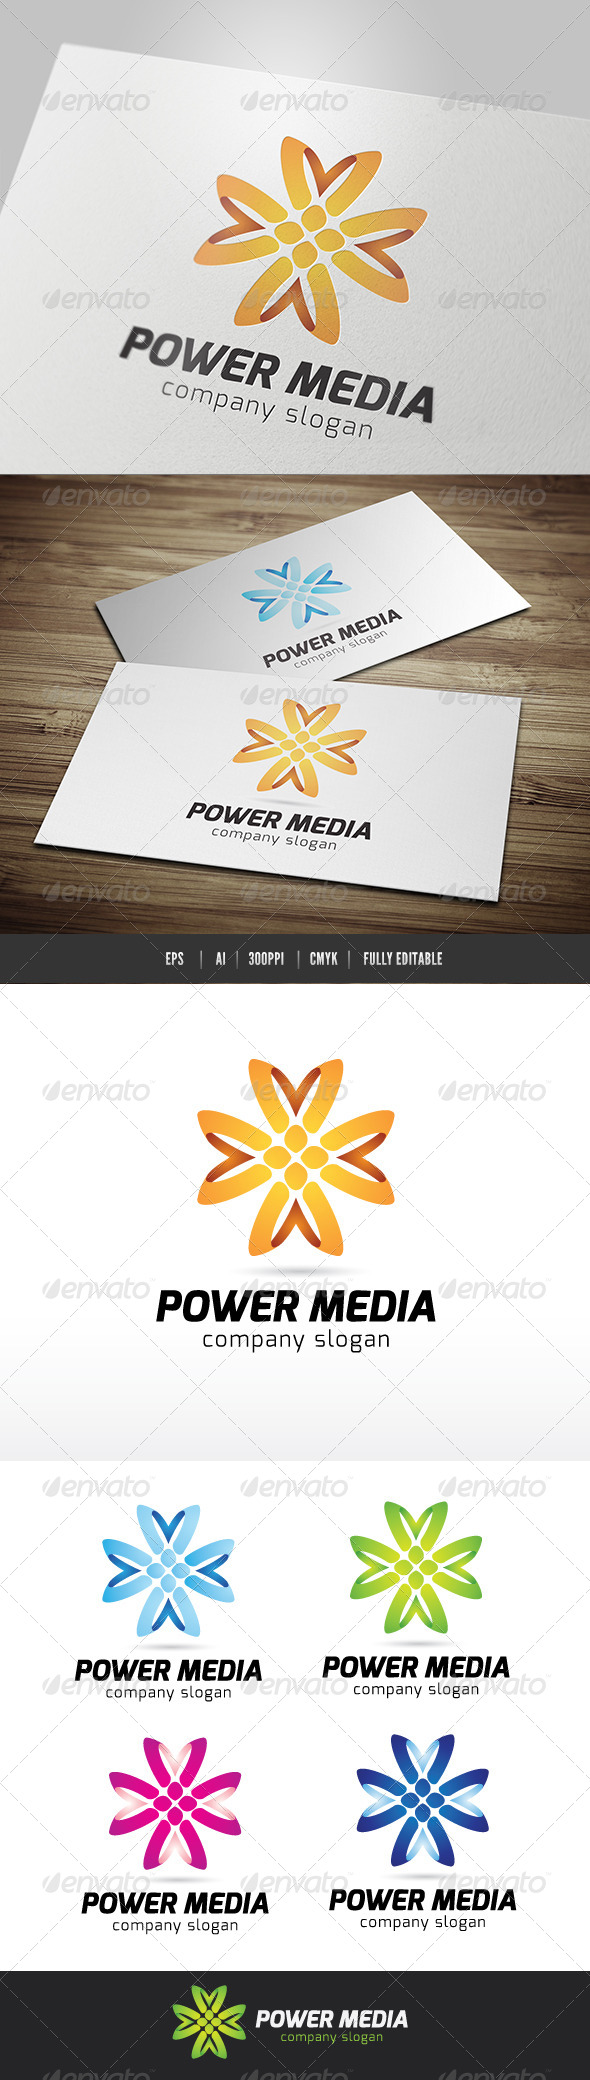 Power Media - Symbols Logo Templates